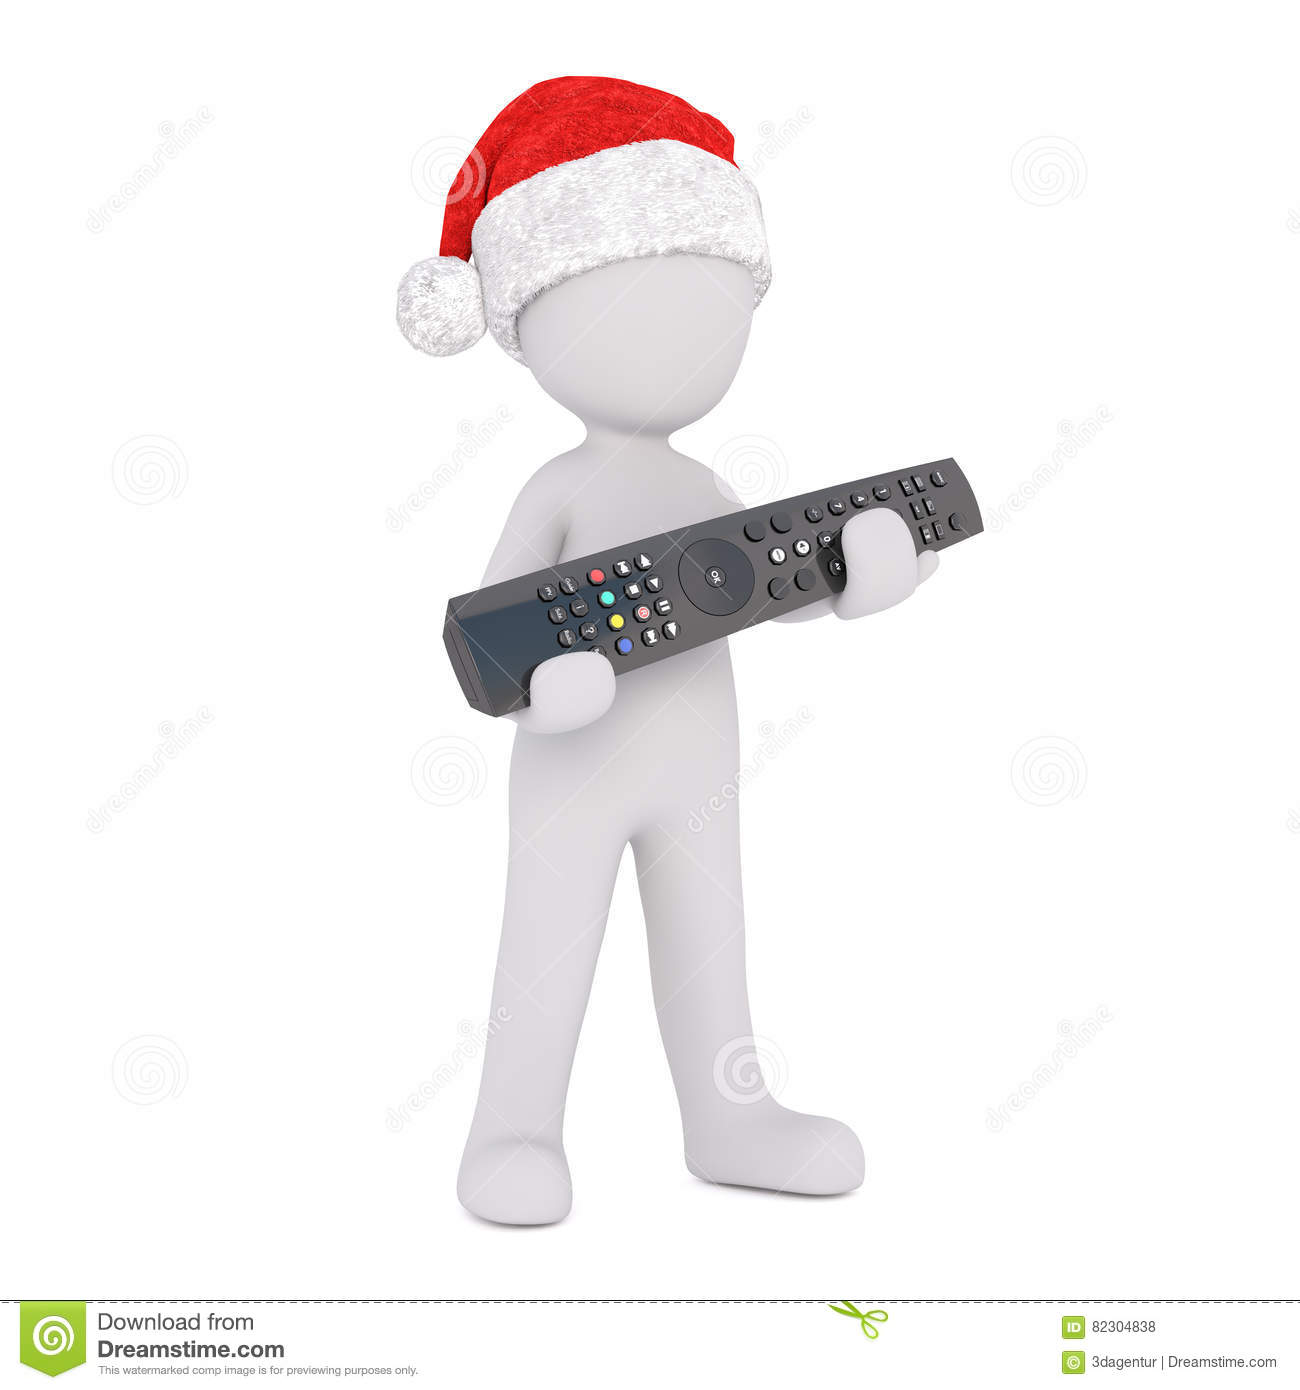 f87236de975f7 3d man in a red Santa hat holding a media remote control in his hands to  celebrate the festive holiday season